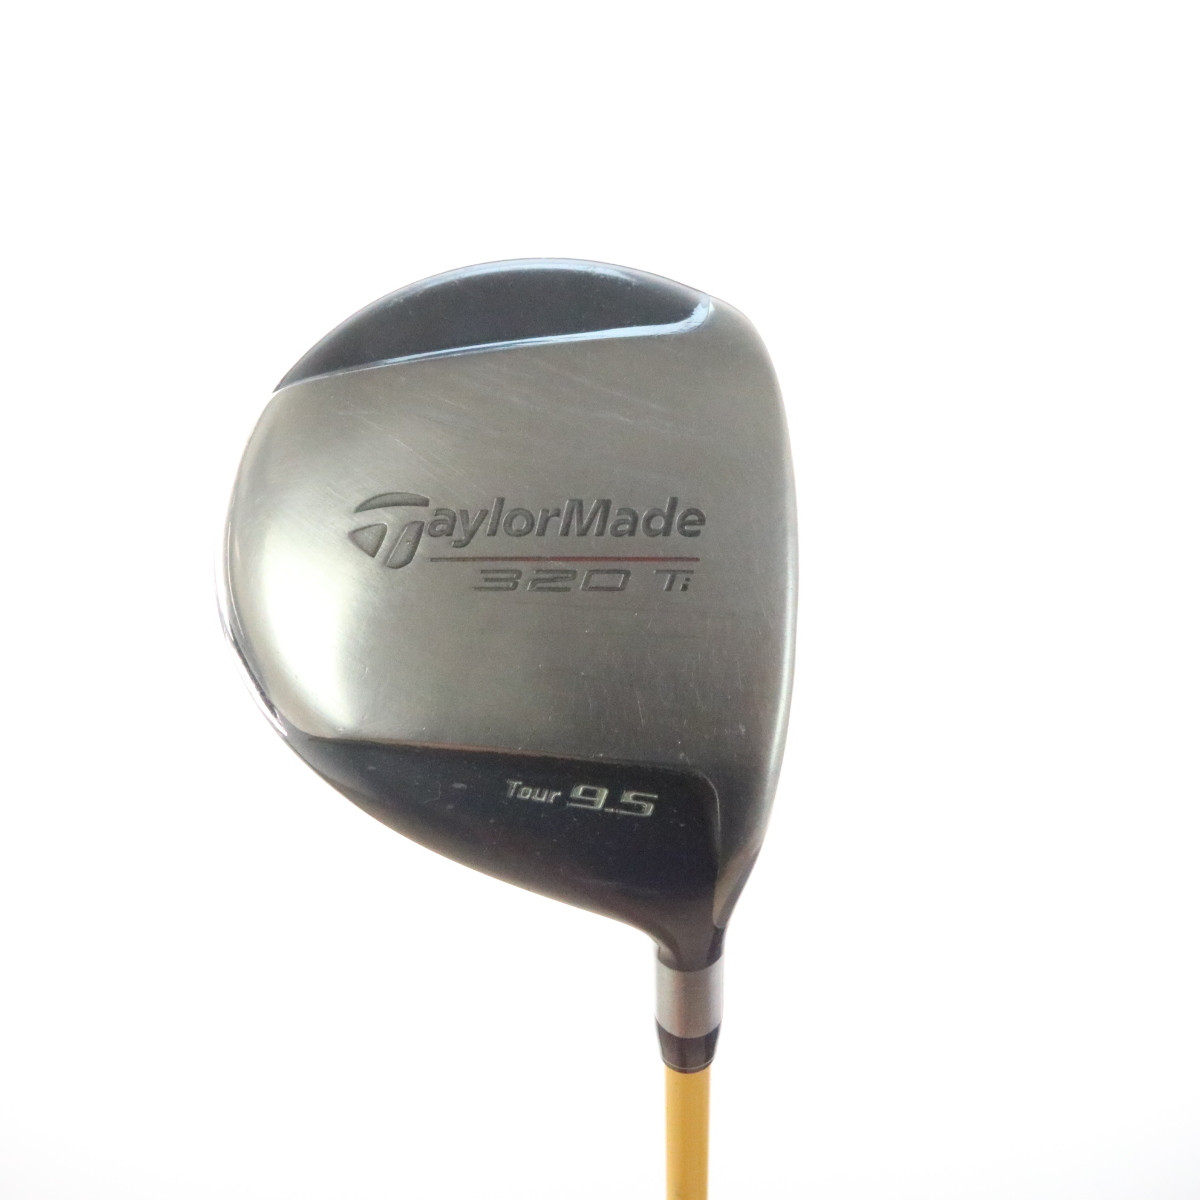 TAYLORMADE 320 TI 9.5 DRIVER FOR WINDOWS 8